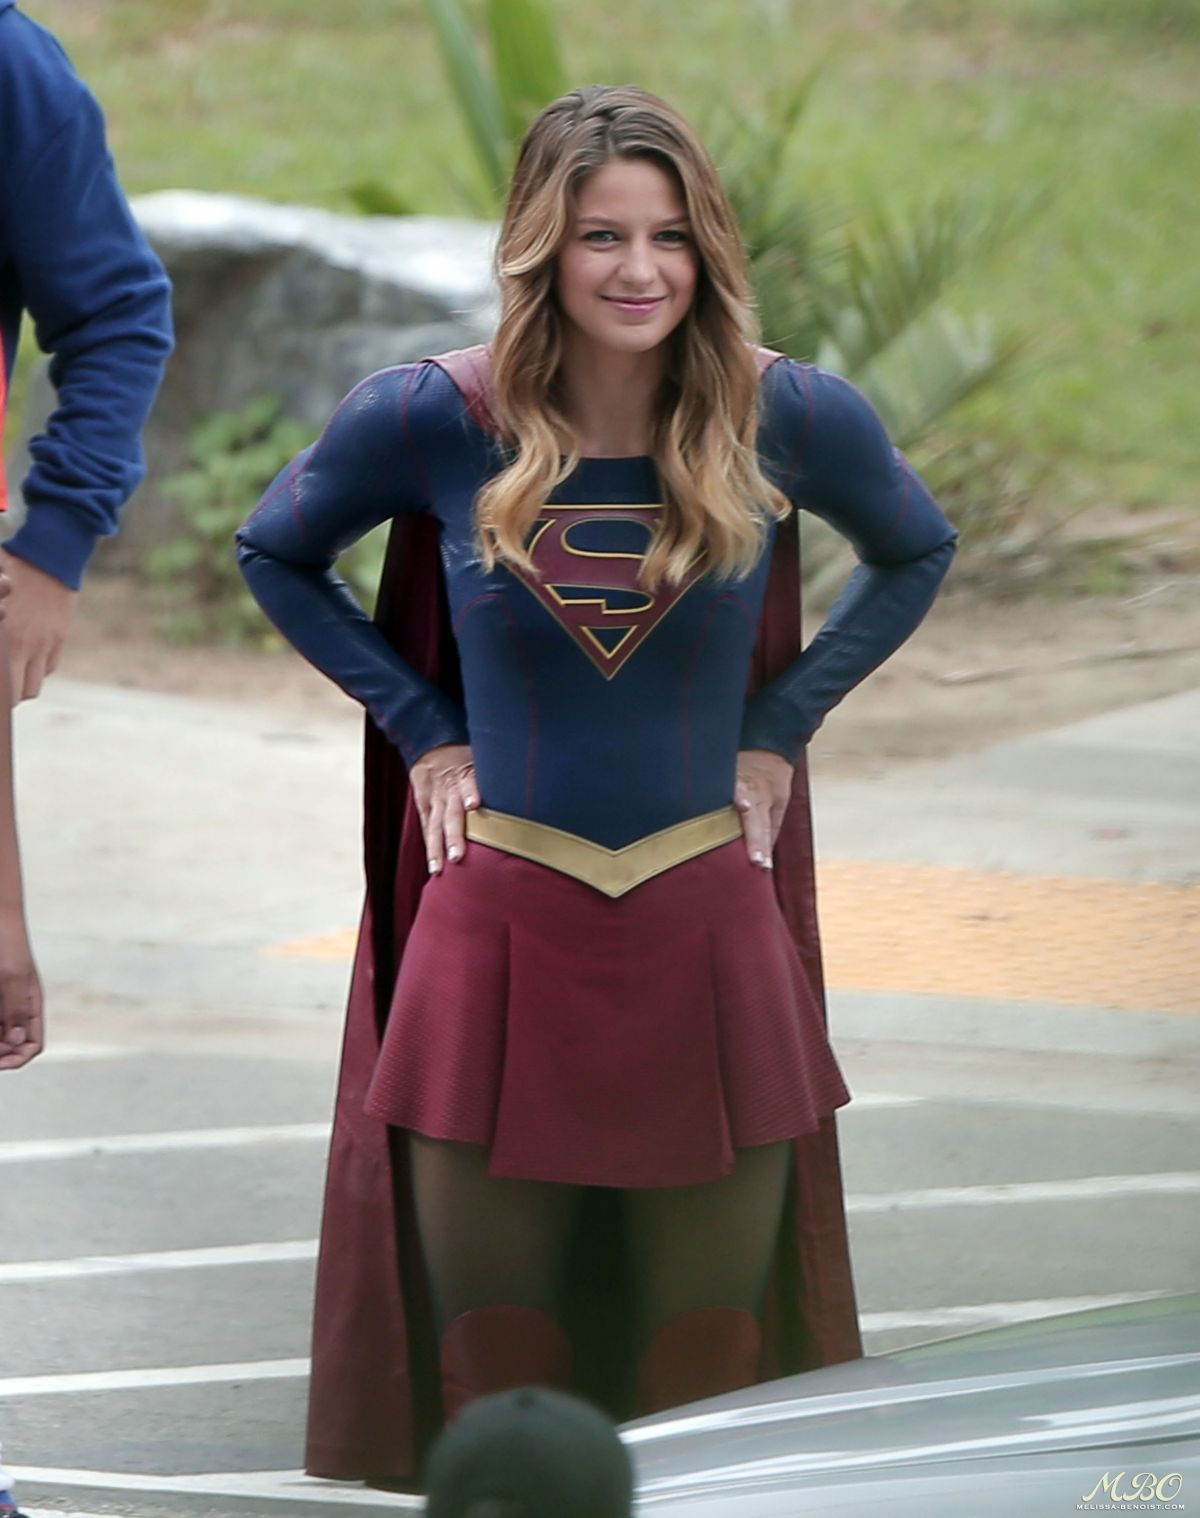 IMGCHILLI ASSES ... http://www.hawtcelebs.com/wp-content/uploads/2015/11/melissa-benoist-on-the-set-of-supergirl-in-los-angeles-10-28-2015_1.jpg